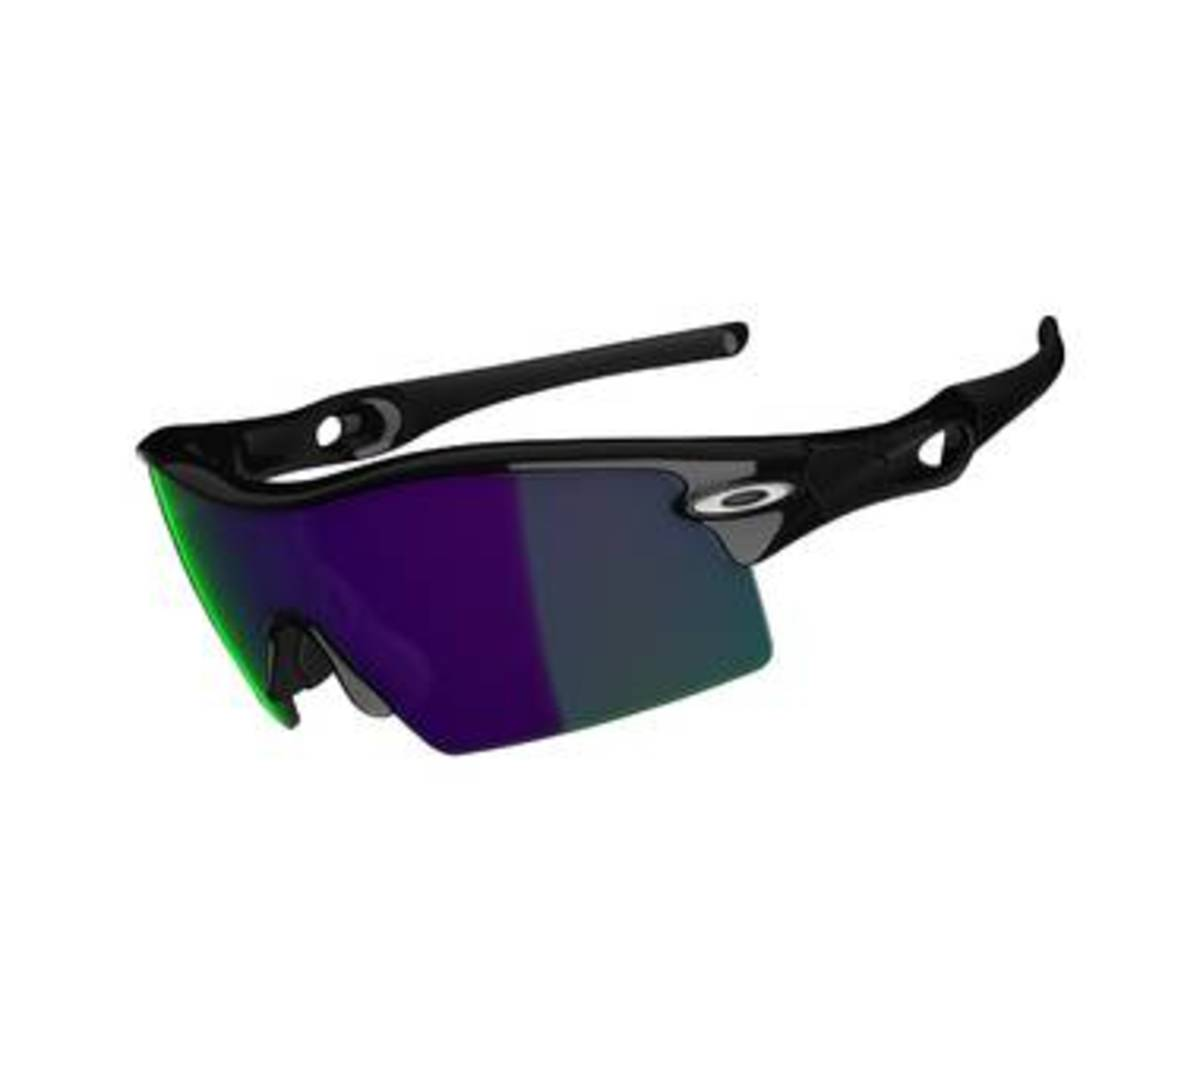 How to tell if / Spot Fake or real Oakley Sunglasses / are fake Oakleys